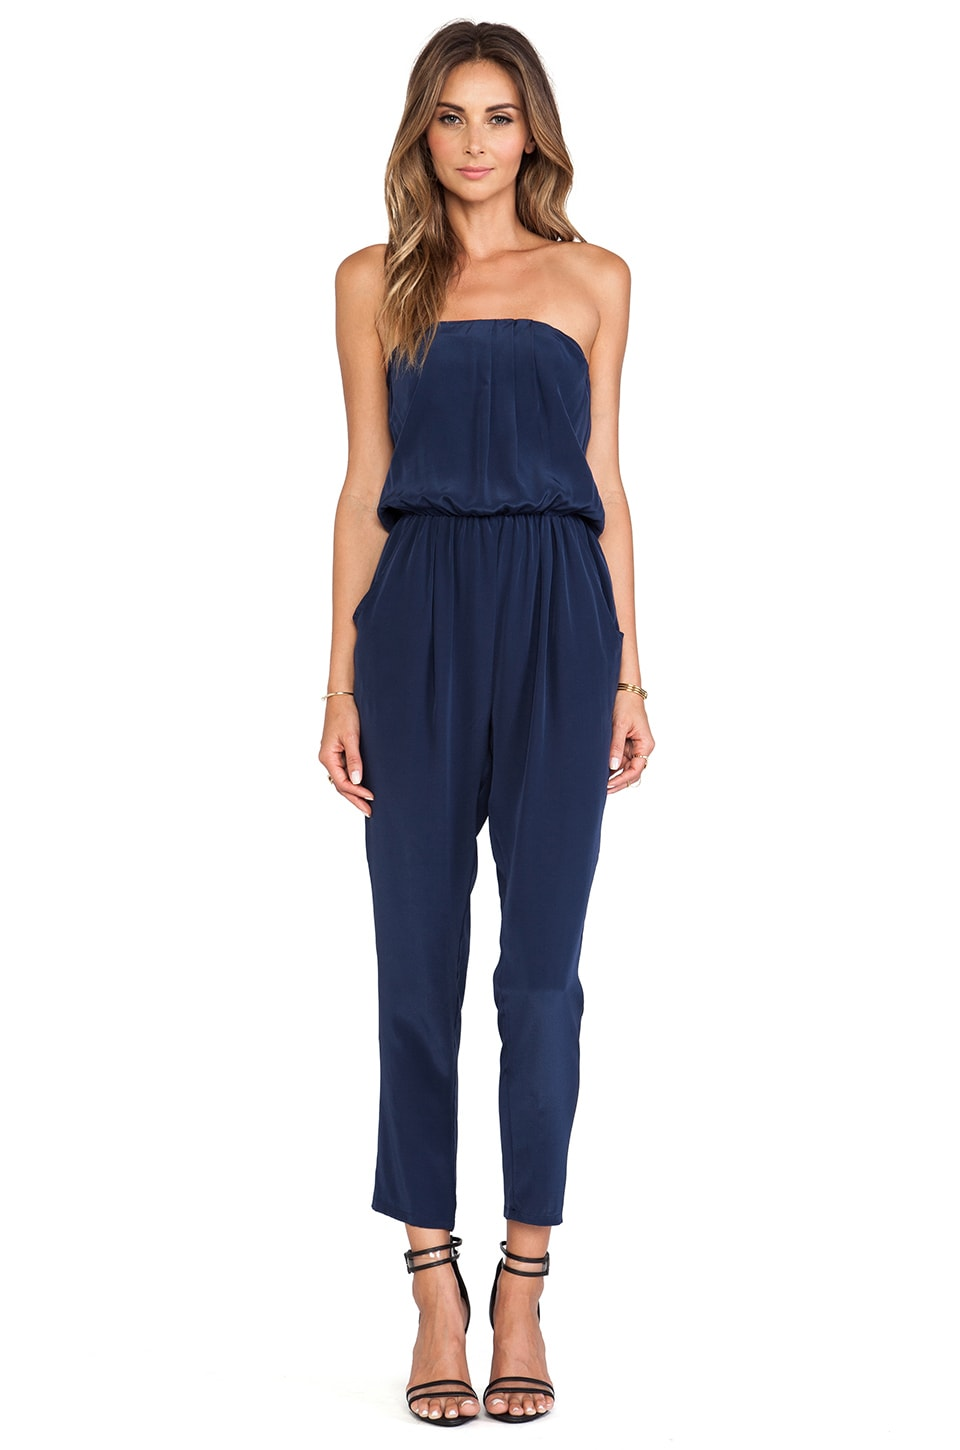 Helena Quinn Strapless Jumpsuit in Navy